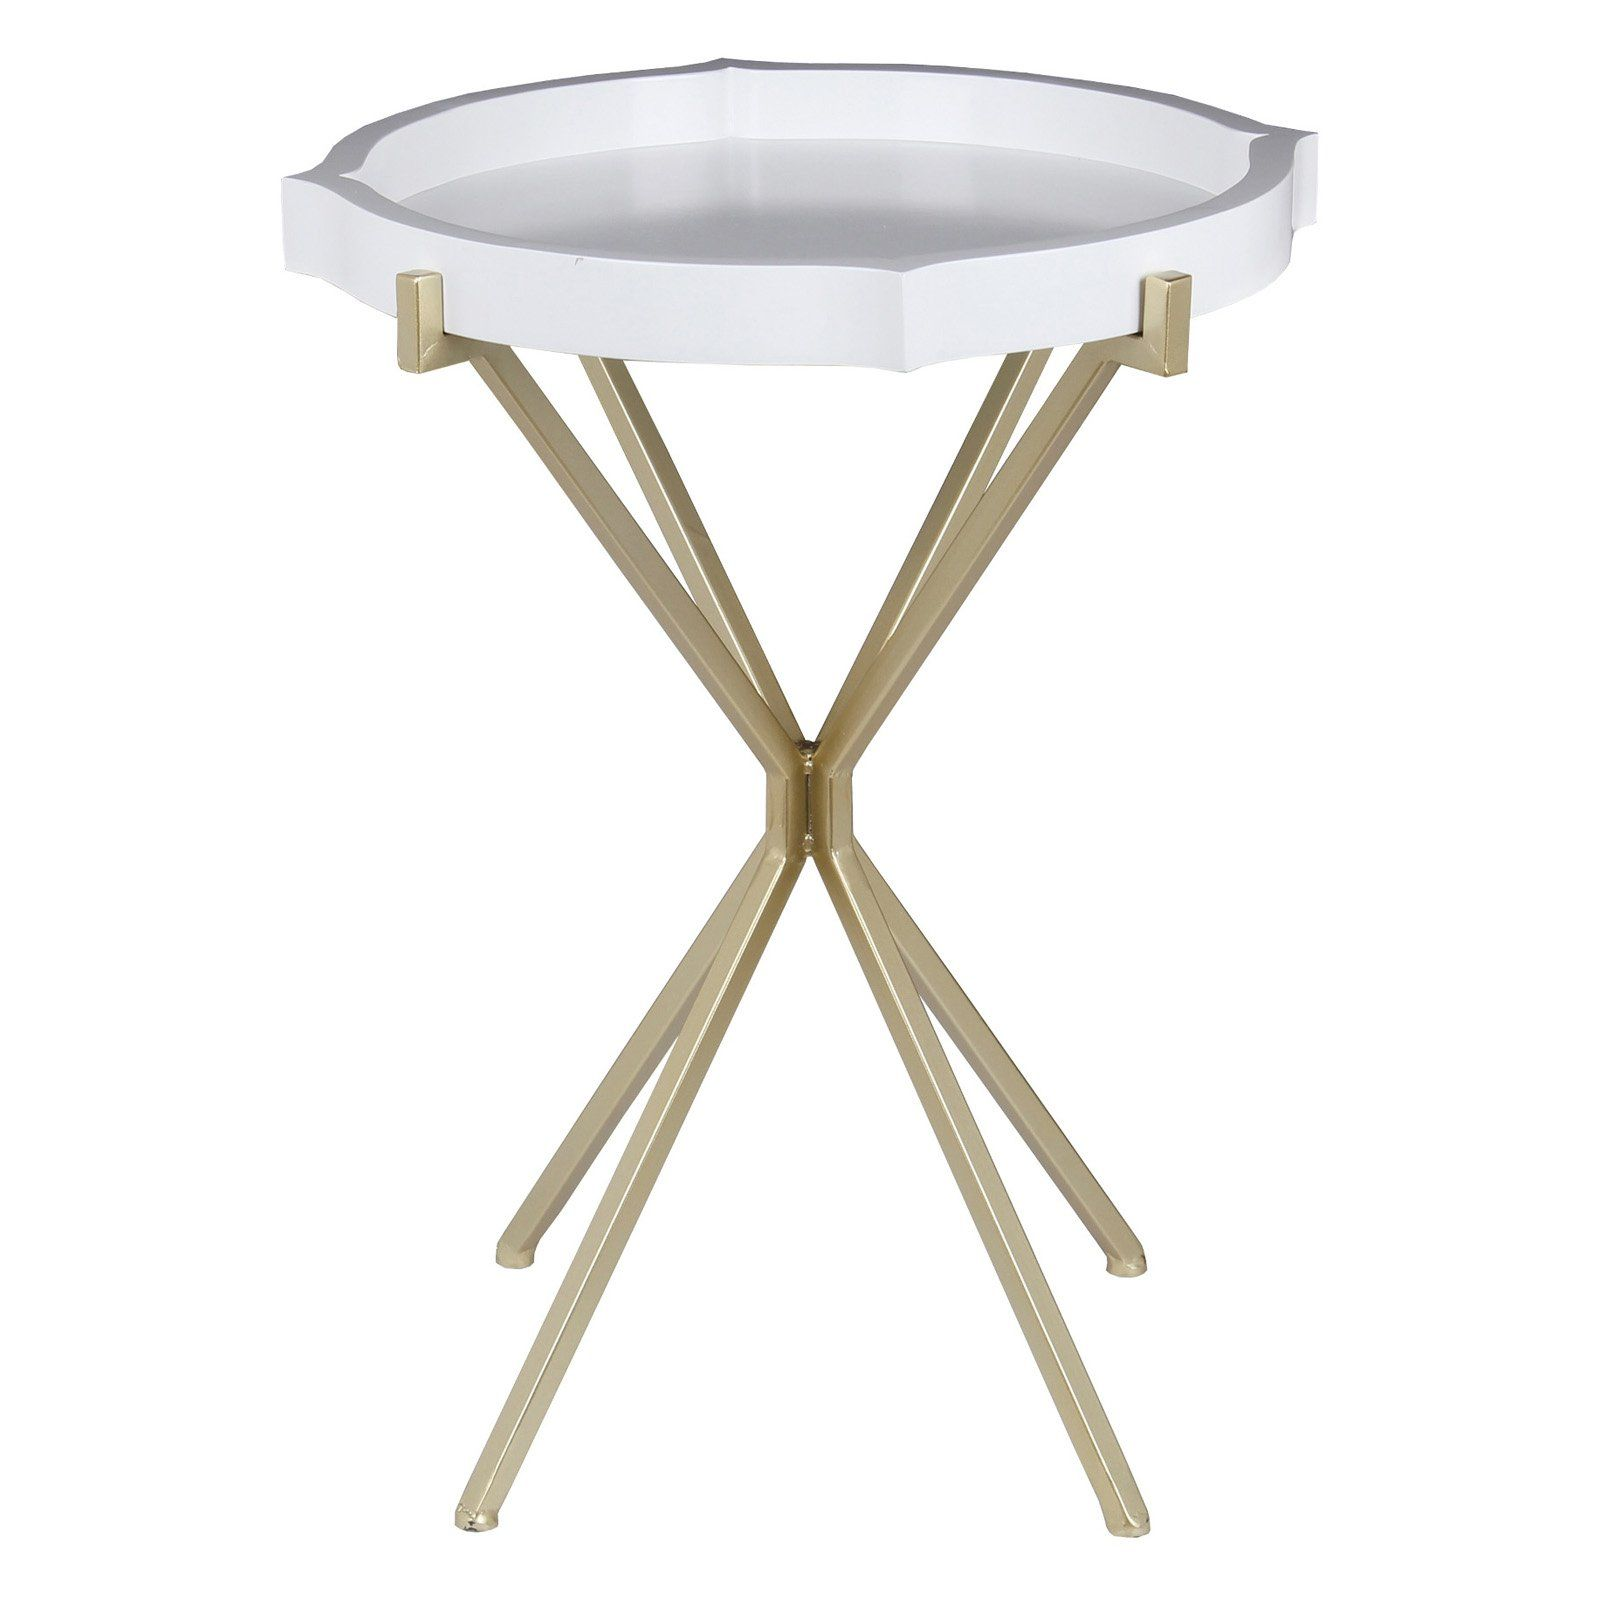 - Privilege International Accent Table - Glossy White White Accent